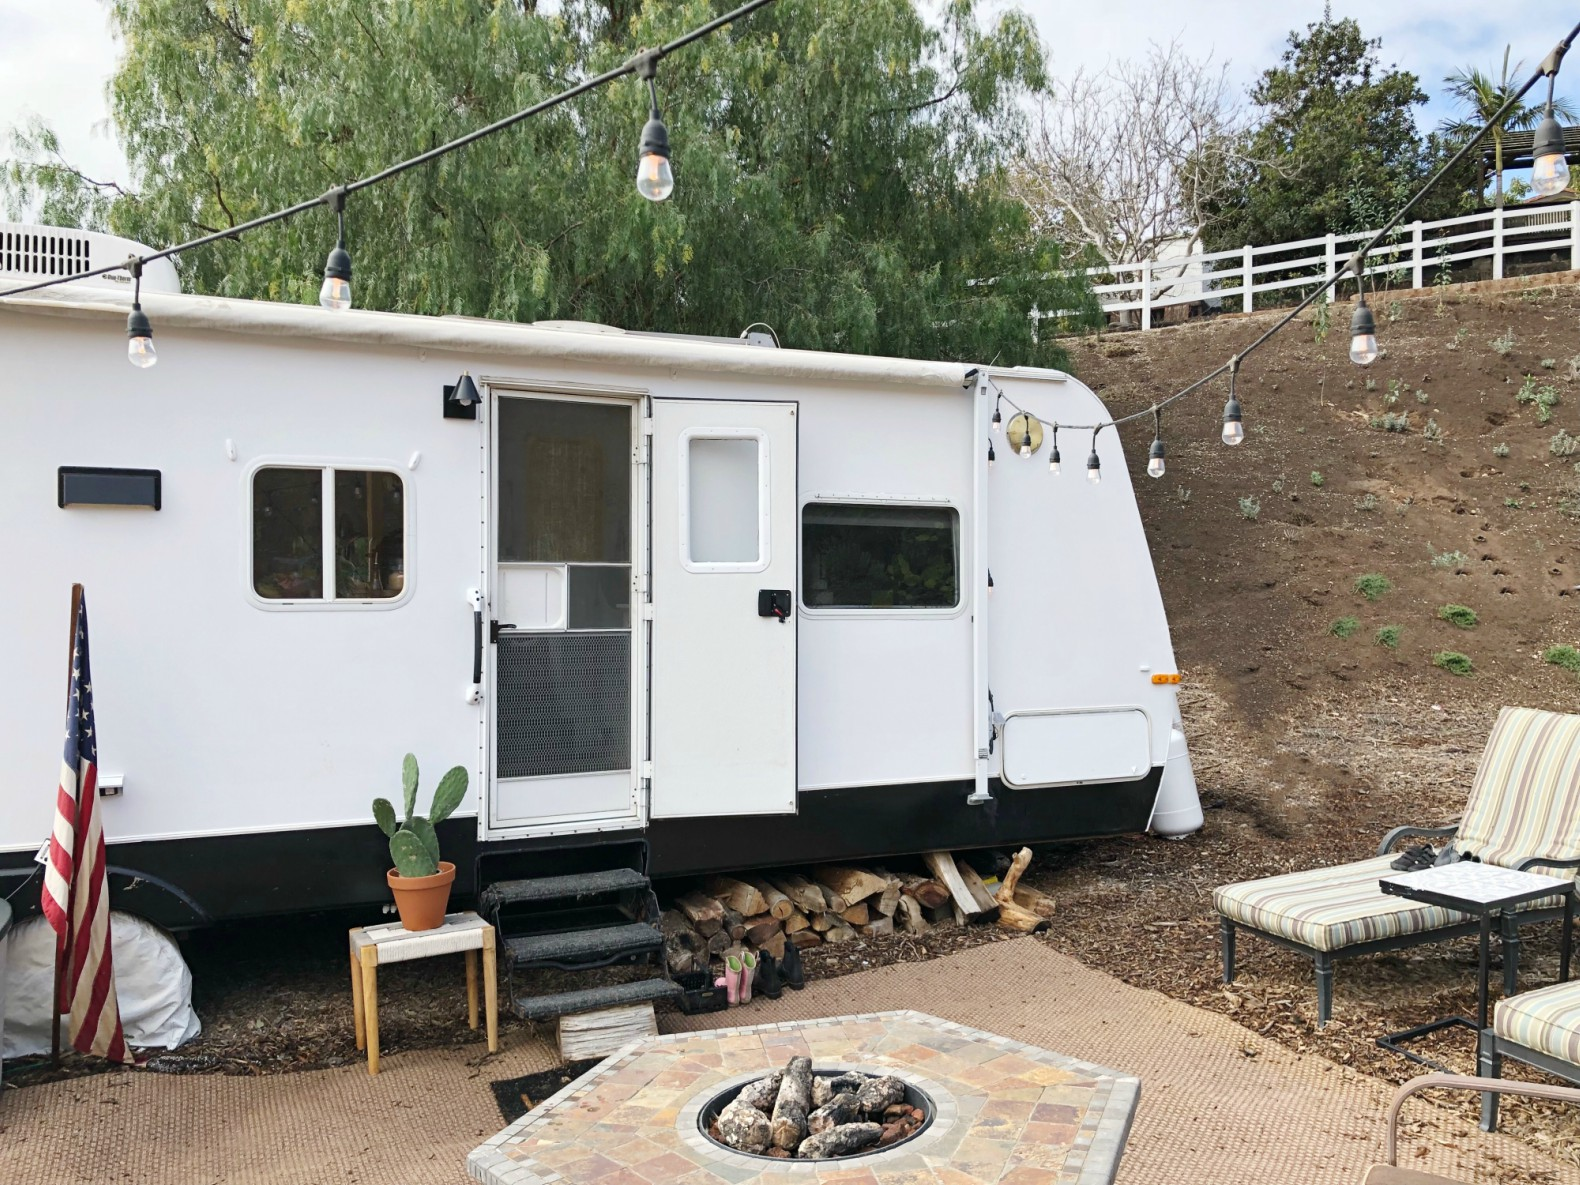 This couple turned an old RV into a five-person home for just $3,000